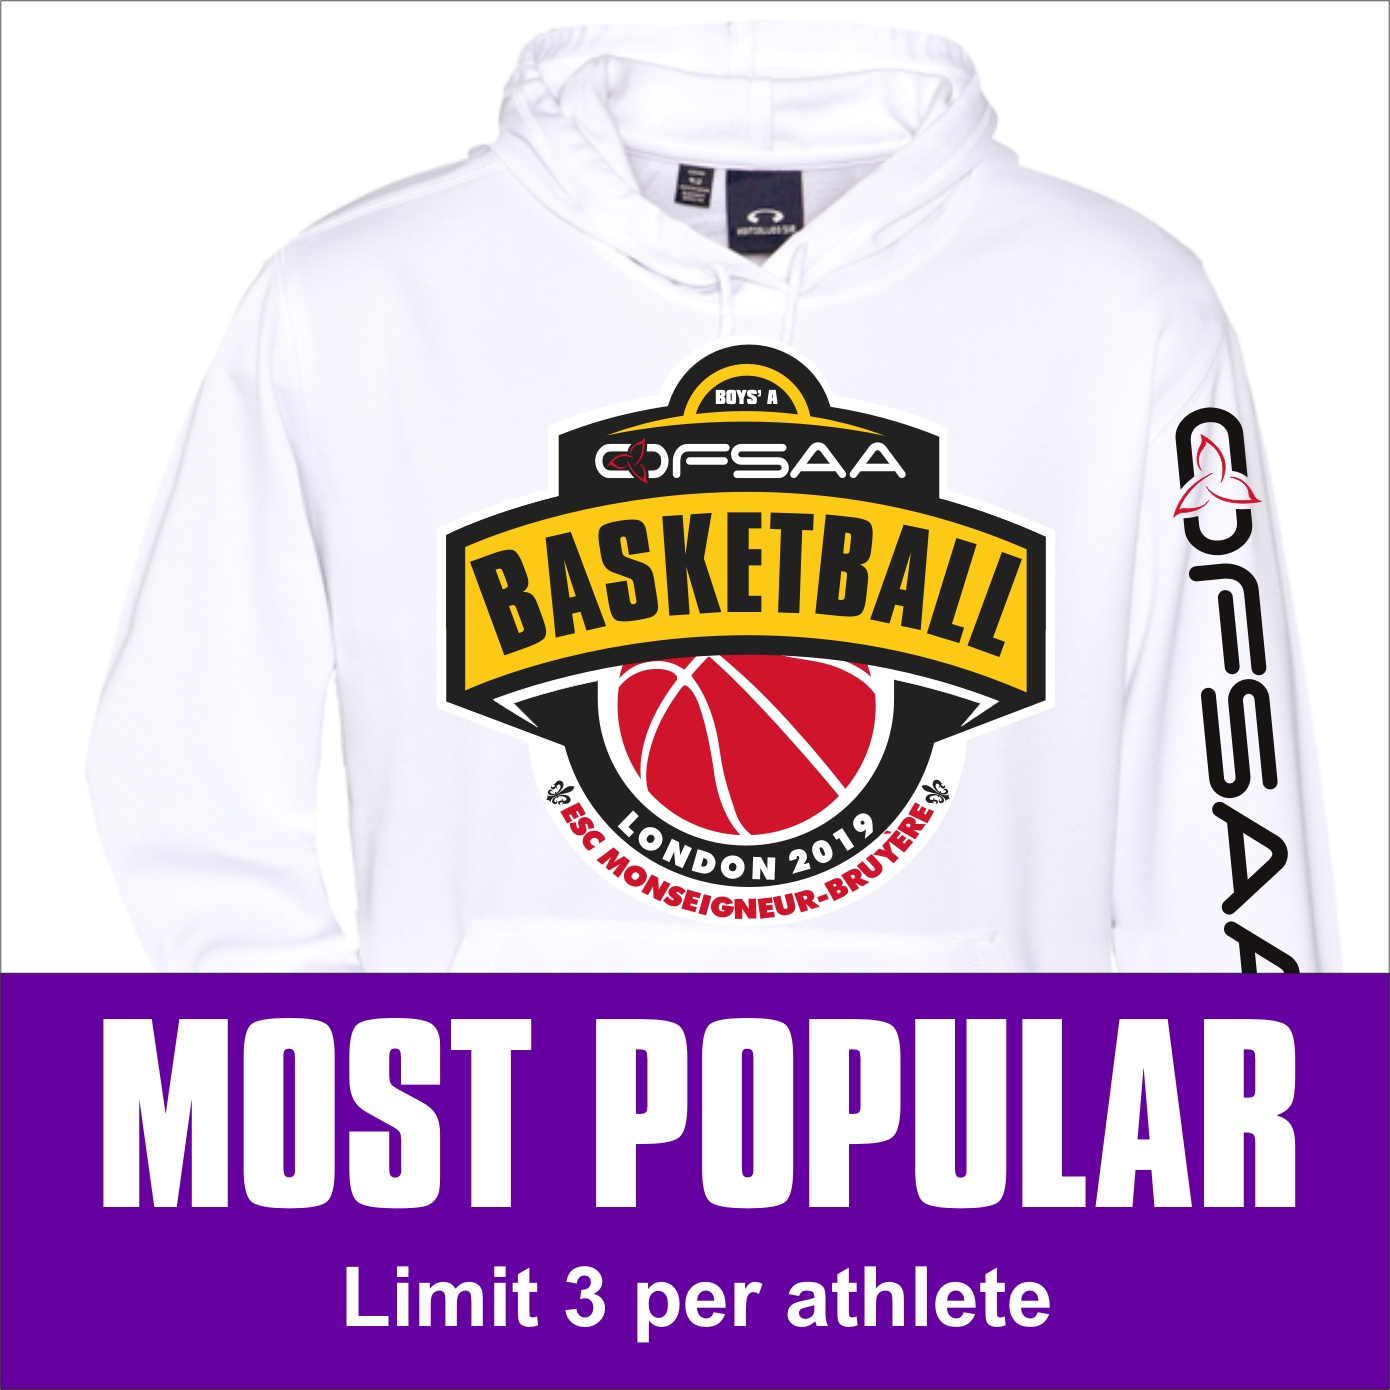 2019 Boys A Basketball Hoodie single white.jpg